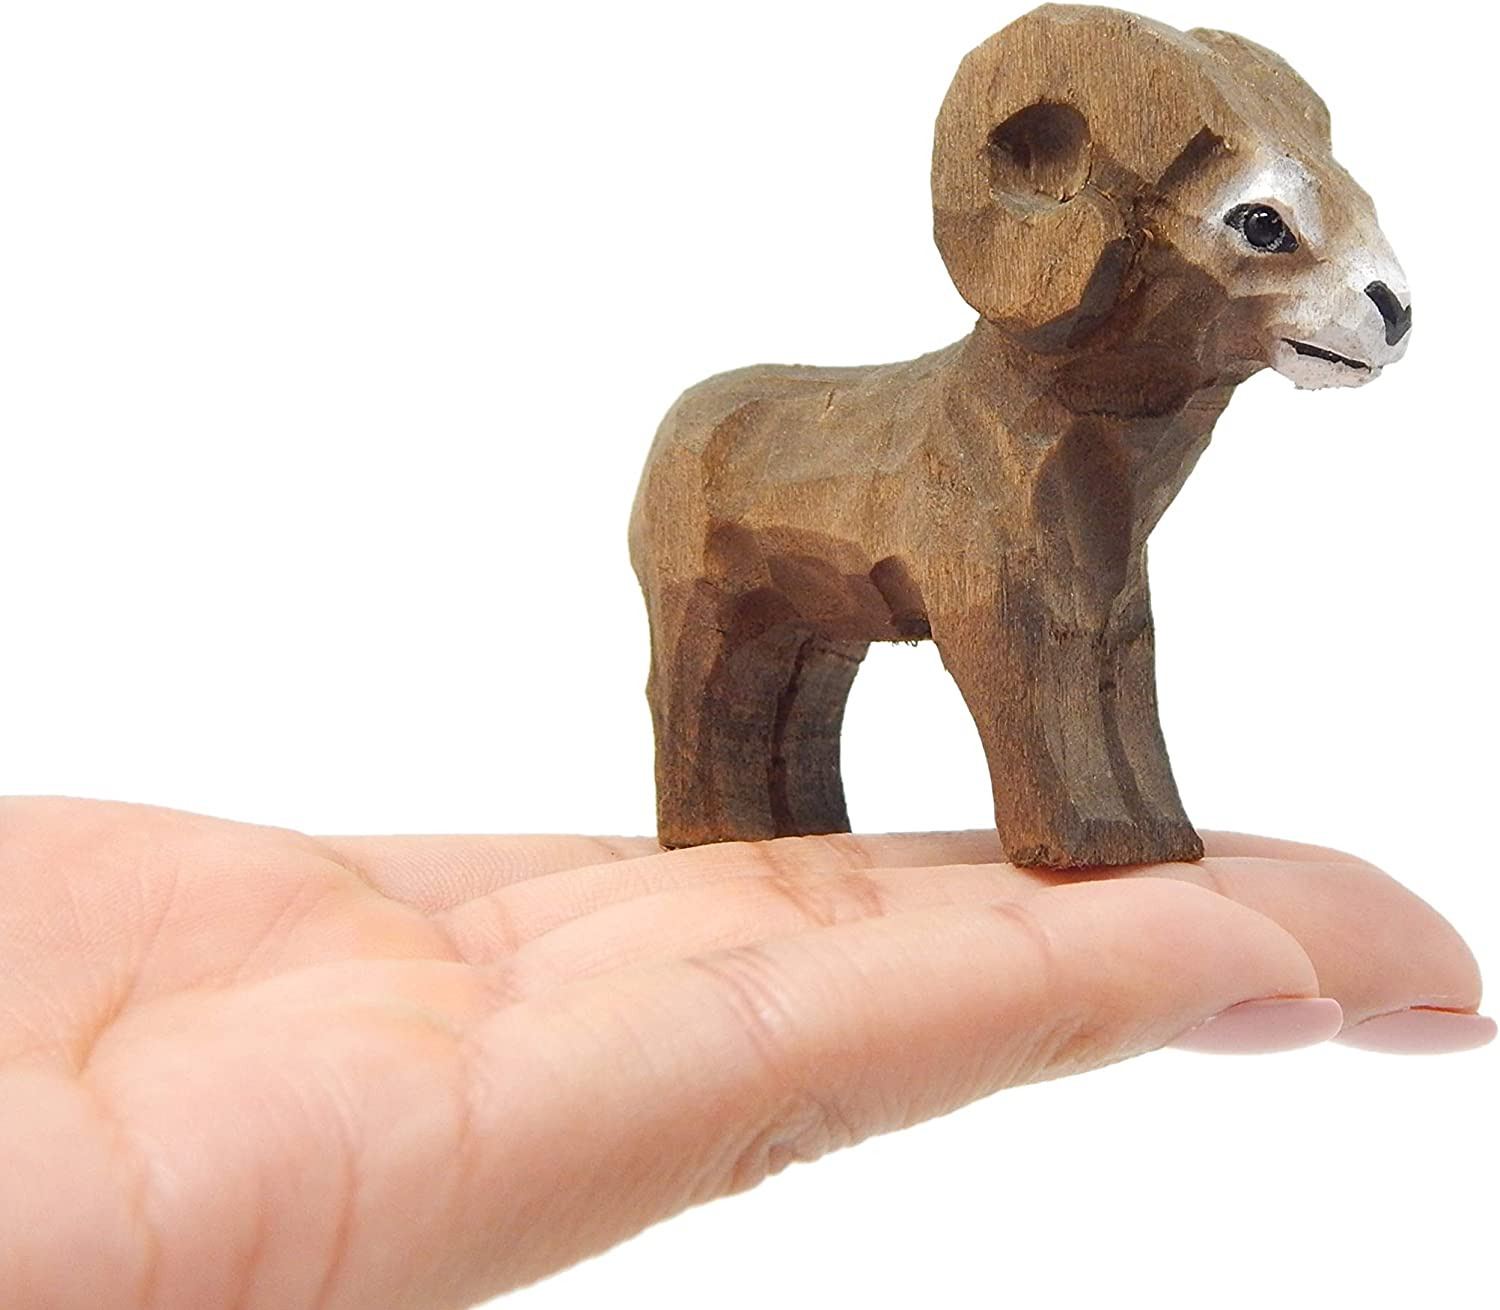 Big Our shop OFFers the best service Horn Ram Figurine Free shipping anywhere in the nation Statue Decor Small Goat Mountain Sc Animal